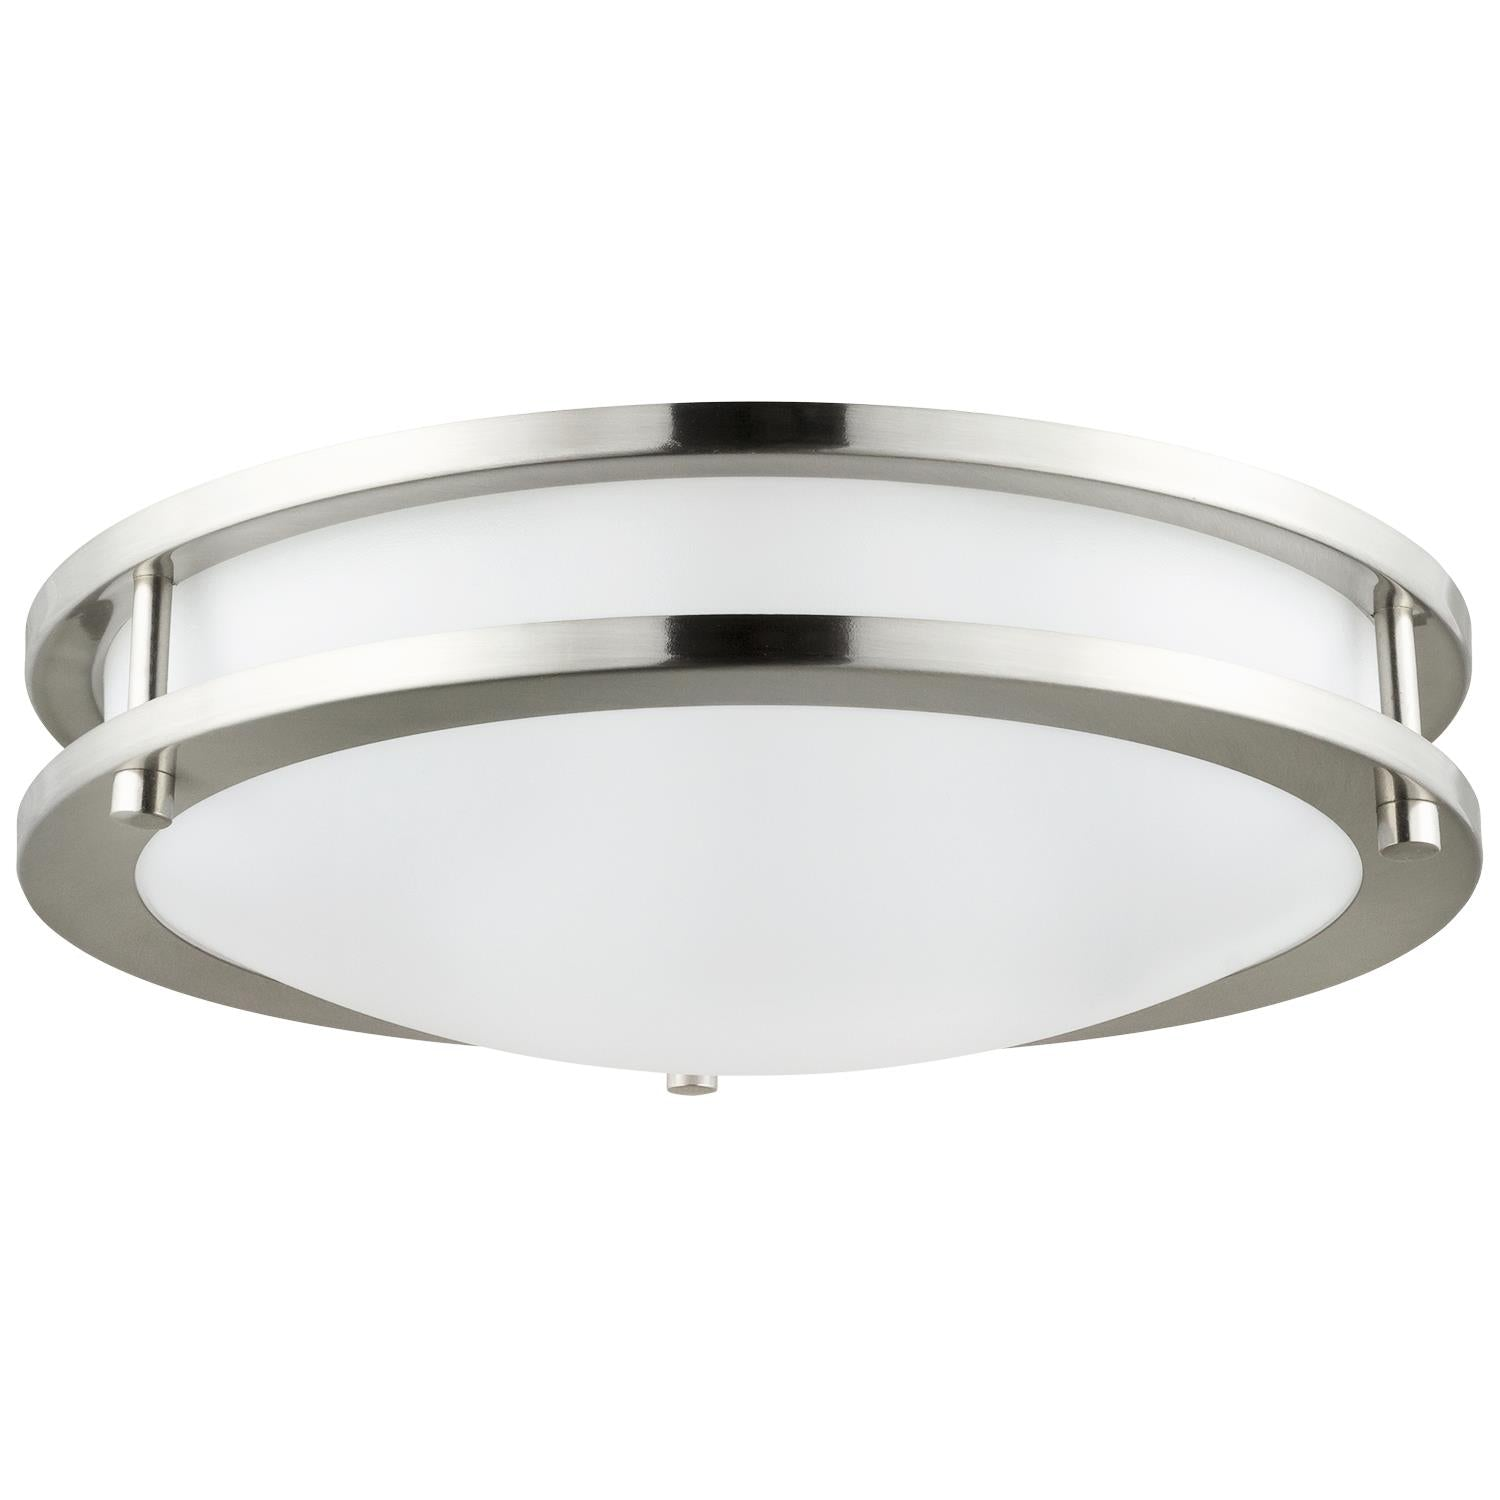 Sunlite 49030-SU 15W 120V 3000K Warm White Decorative Band Trim